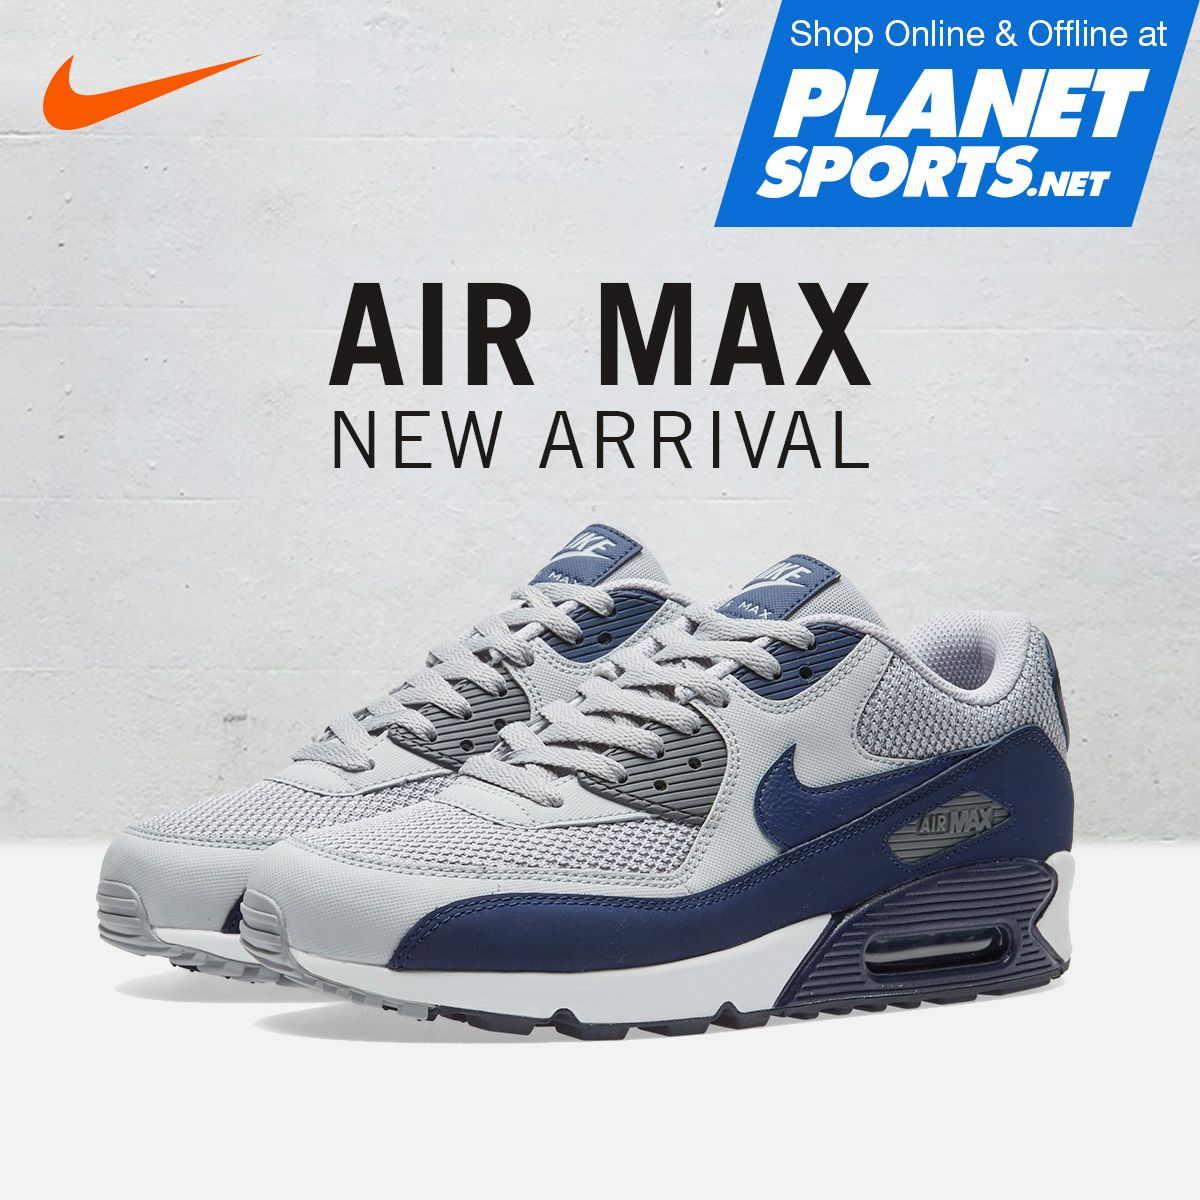 best service fb517 8d9b8 NIKE AIR MAX 90 Essential Iconic profile with Impact protection. Featuring  the superb cushioning that